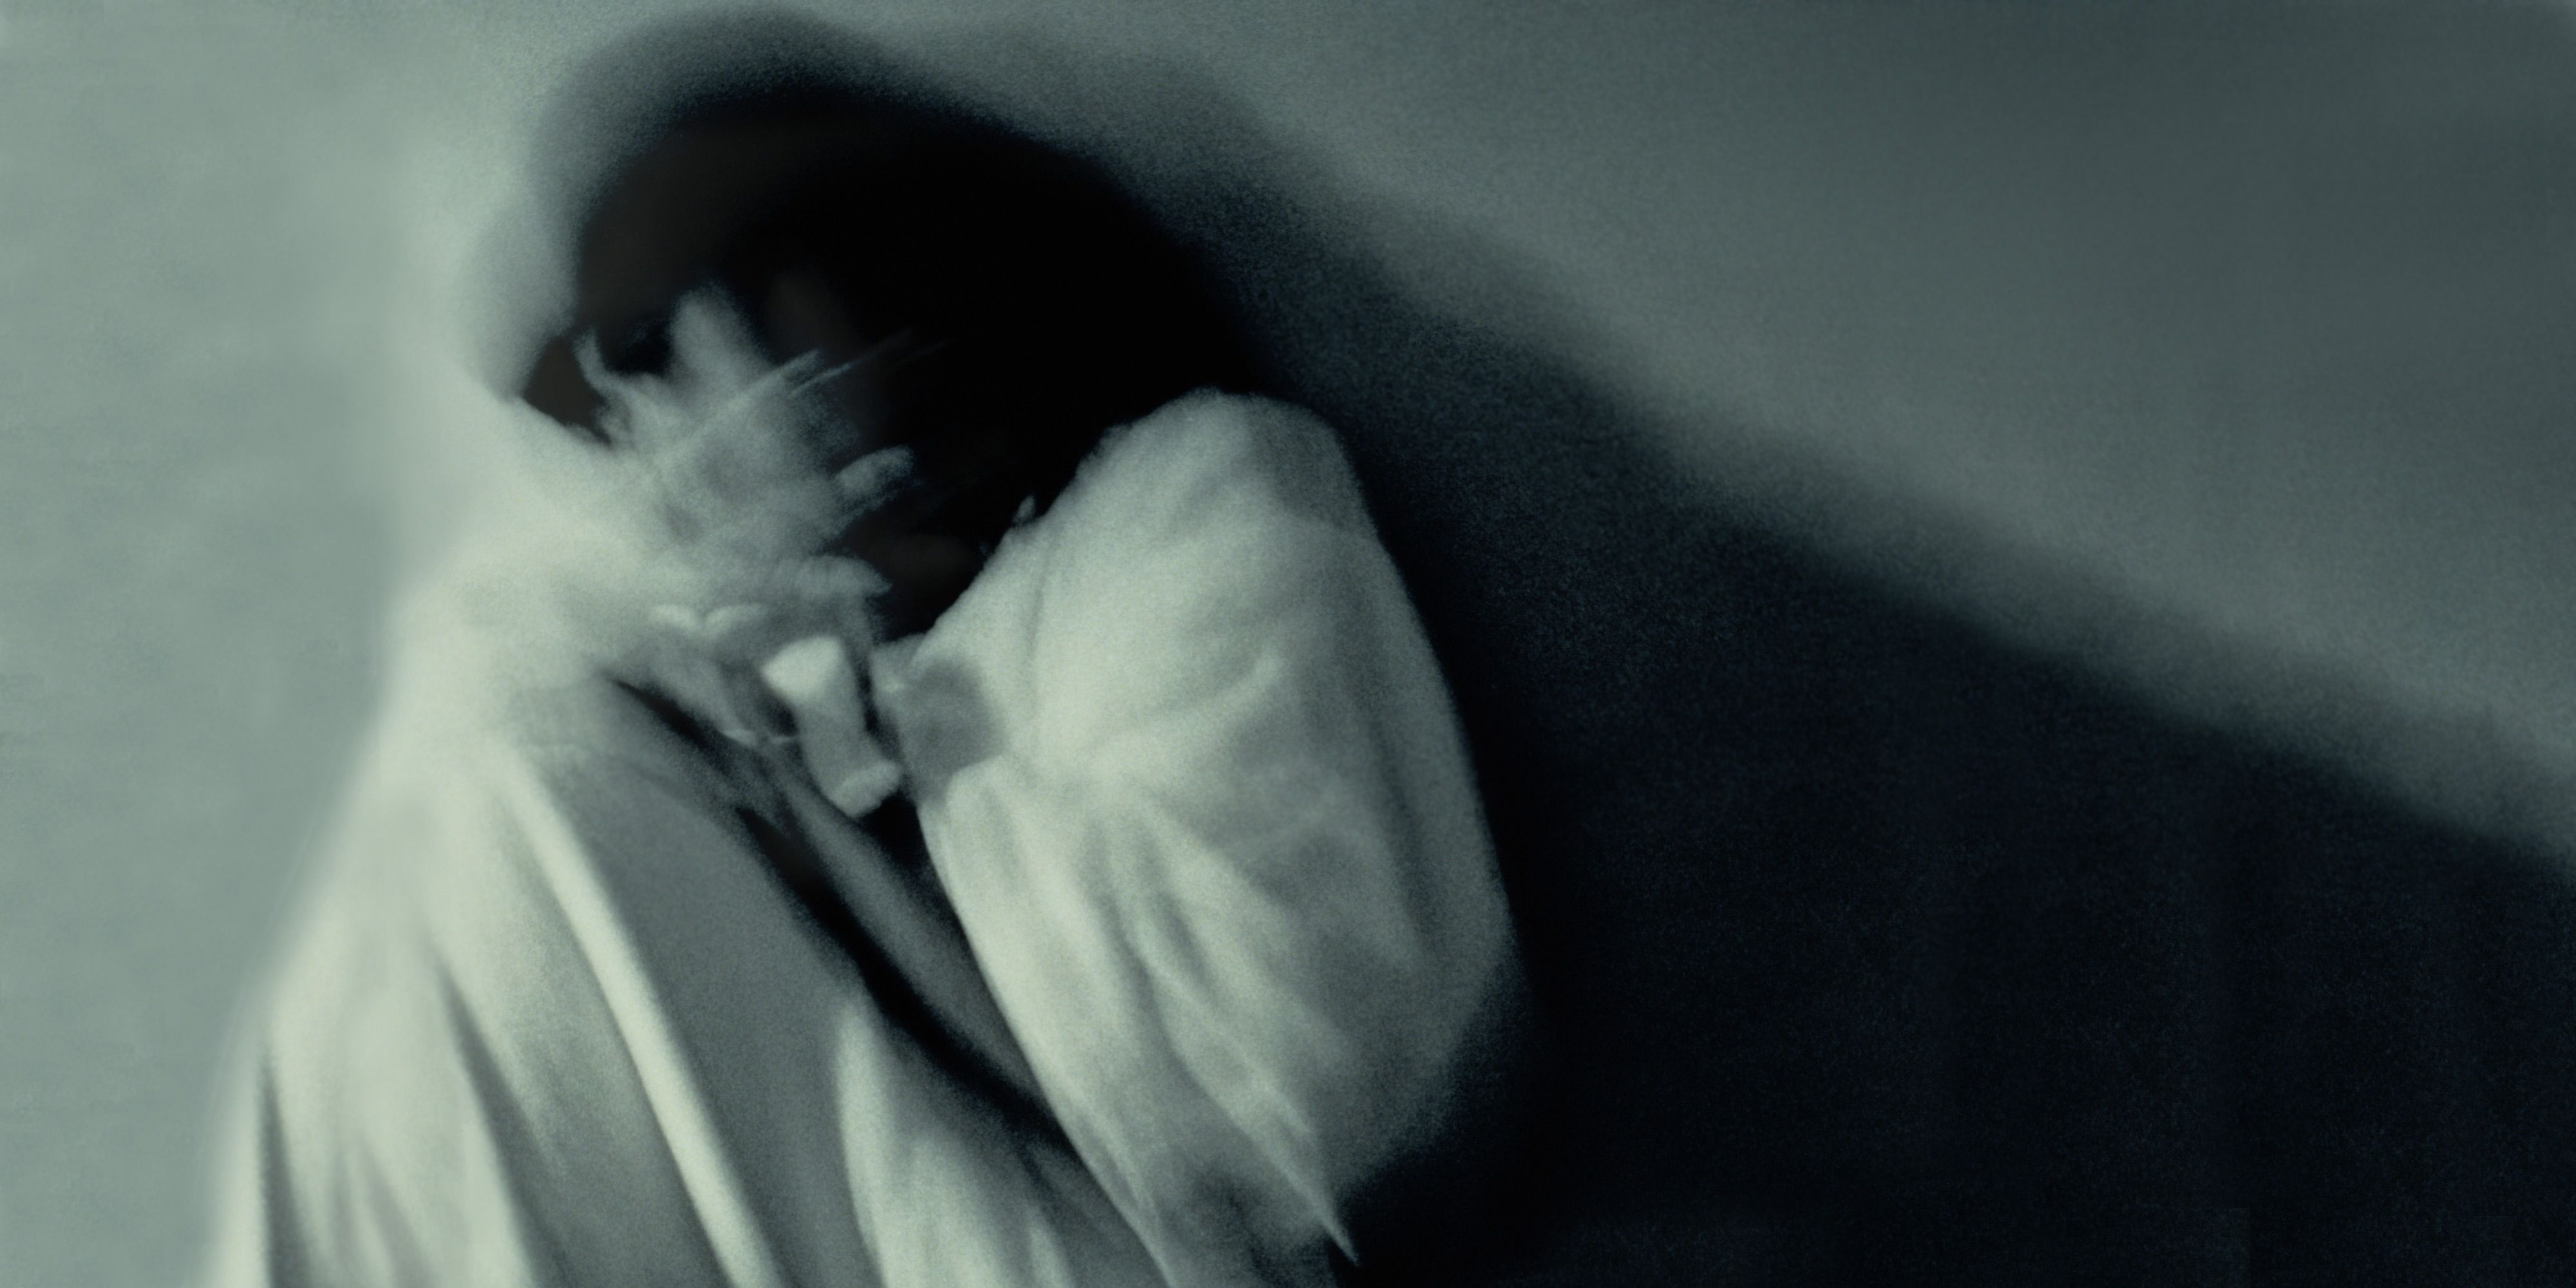 Continual Nightmares The Effect Of Recurrent Bad Dreams